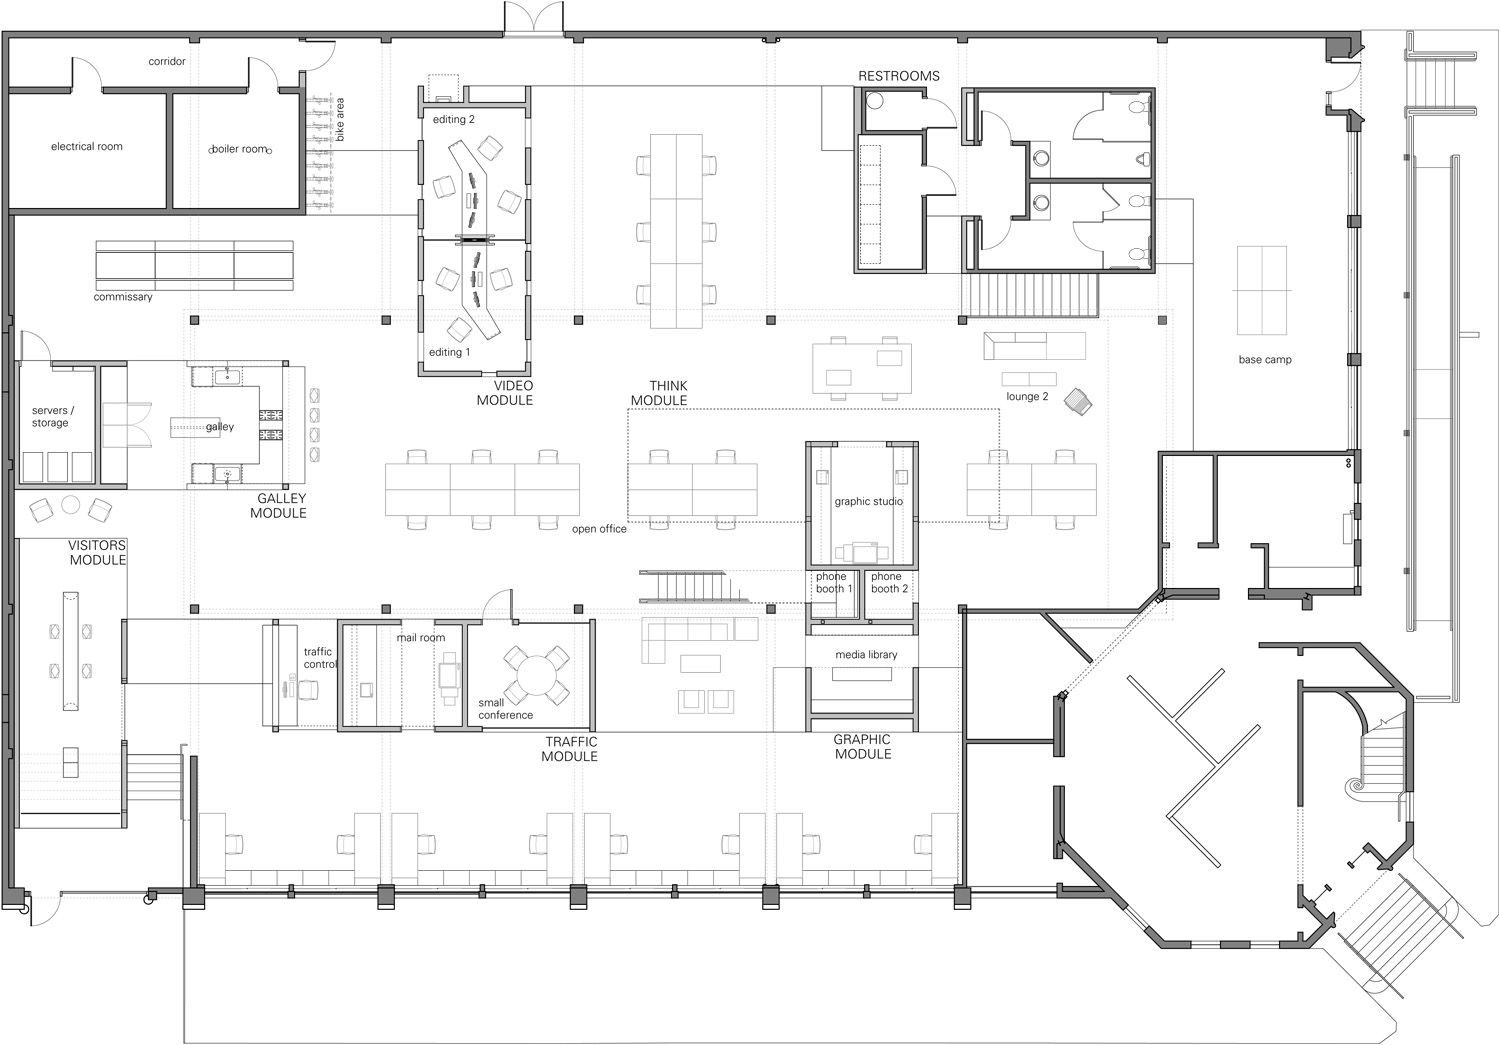 North skylab architecture office floor plan office for Architectural house design with floor plan